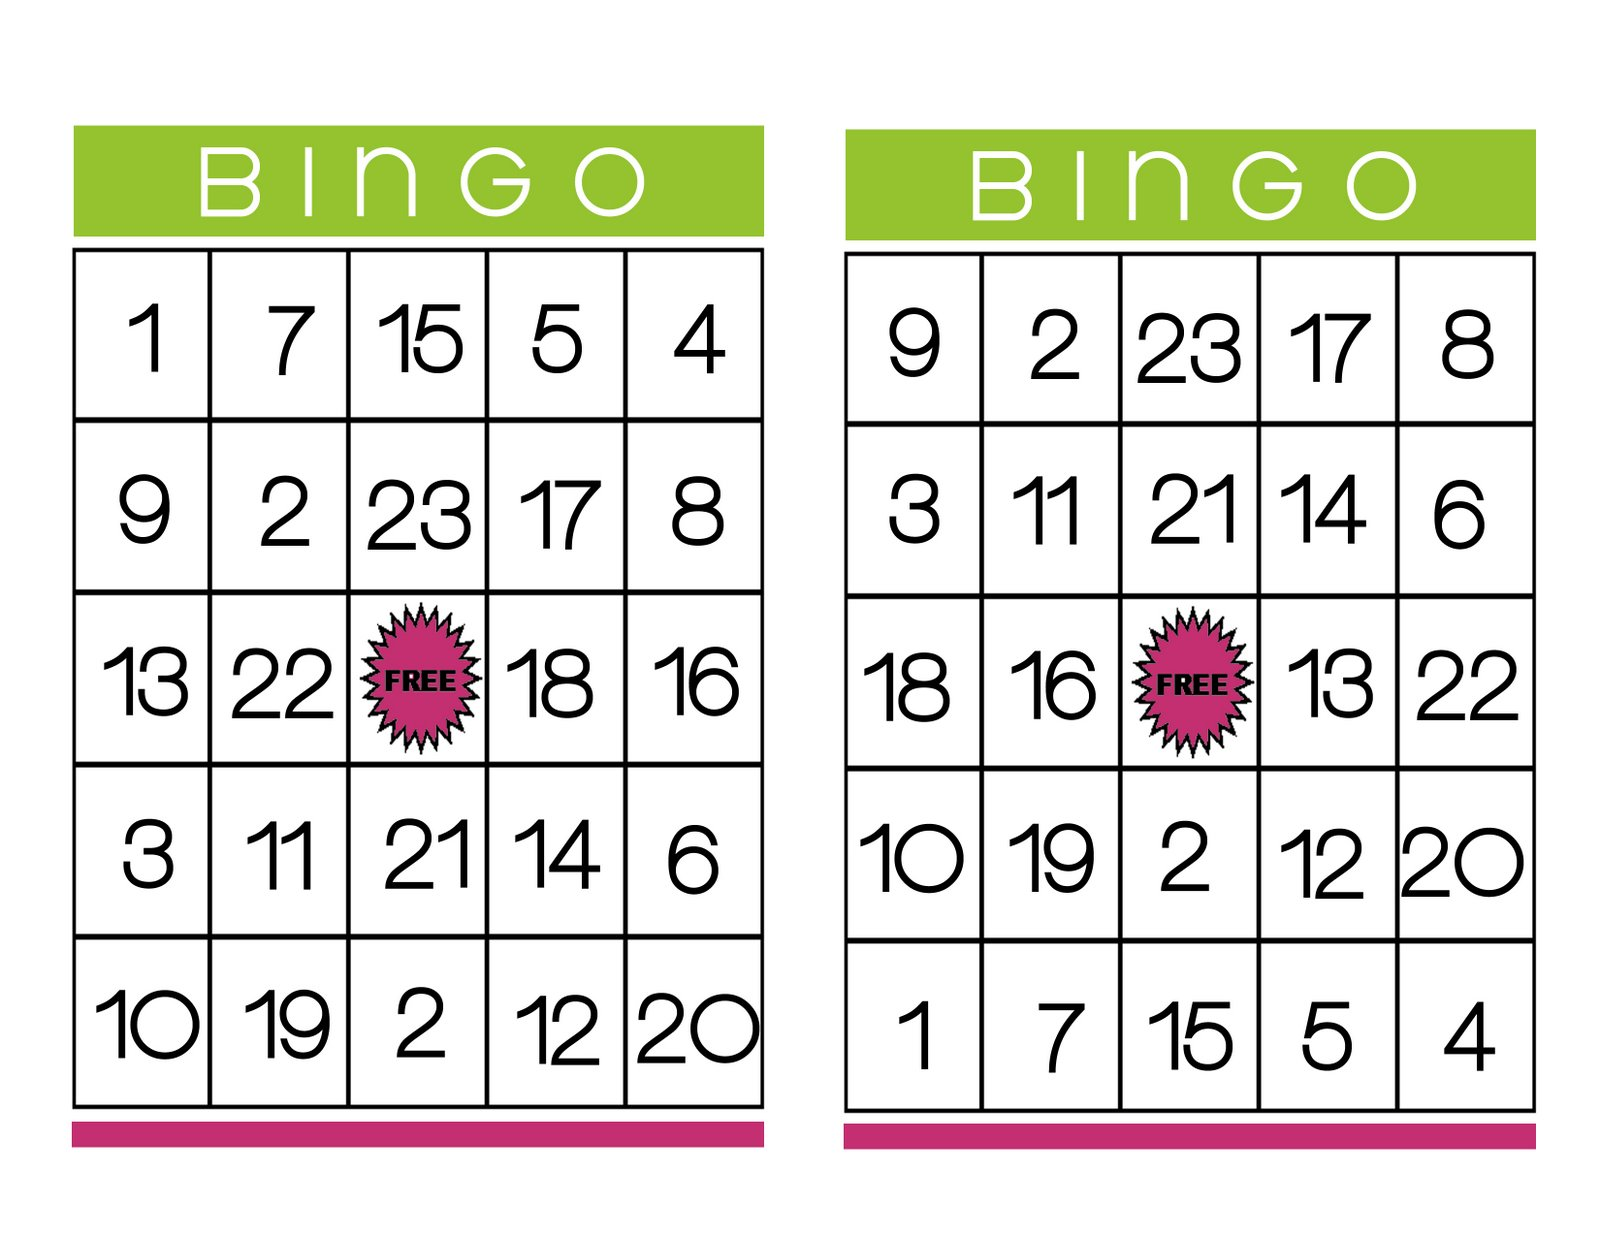 Bingo Cards | New Calendar Template Site